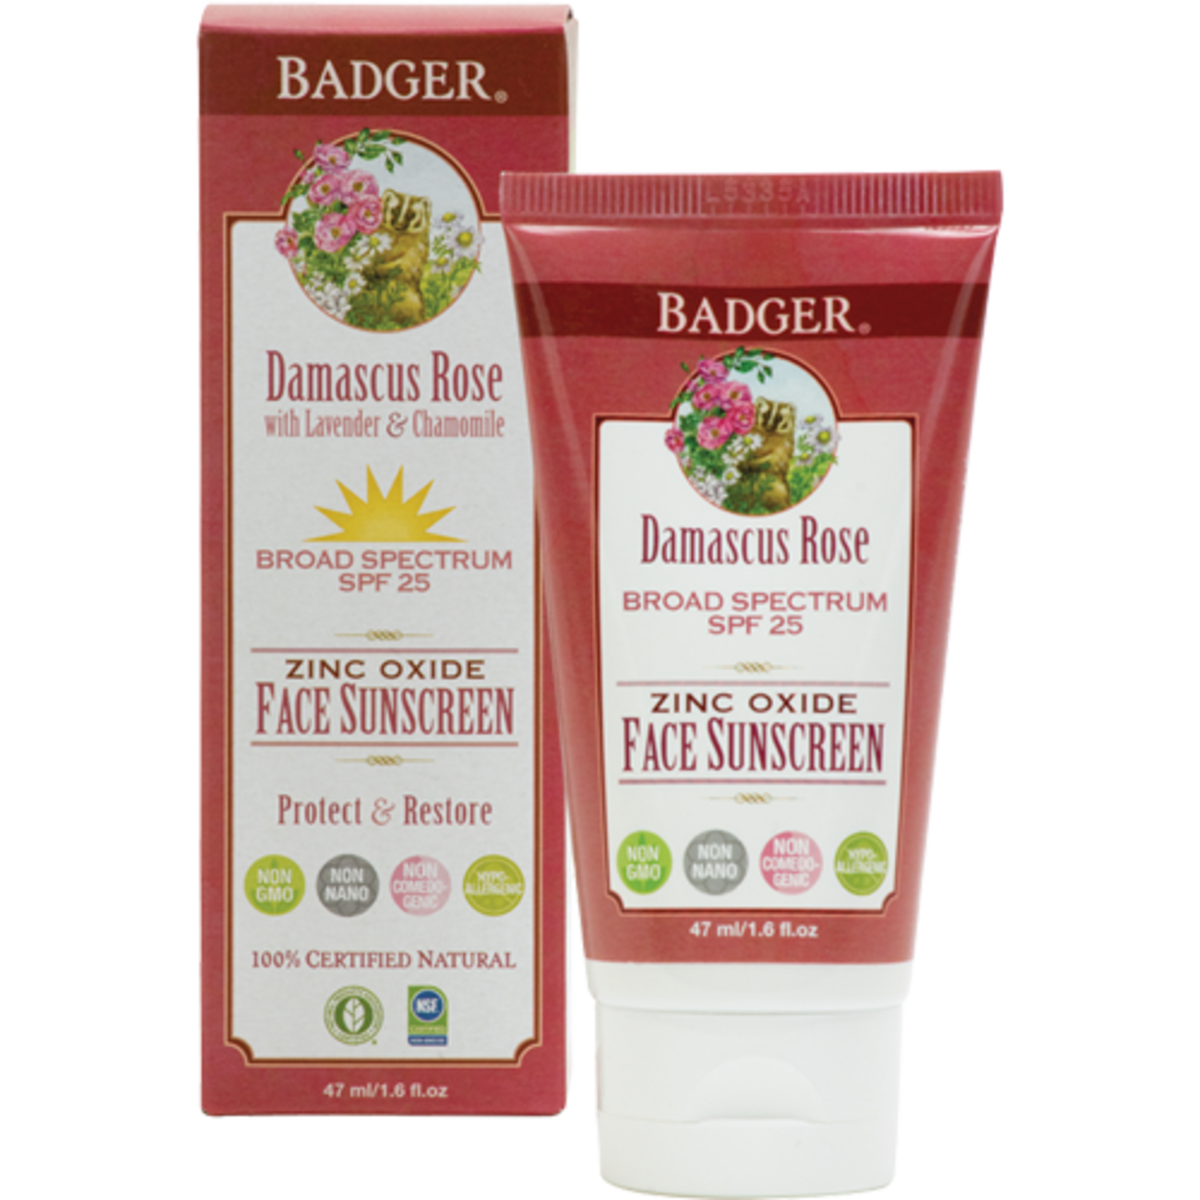 Badger Damascus Rose SPF 25 Face Sunscreen Lotion